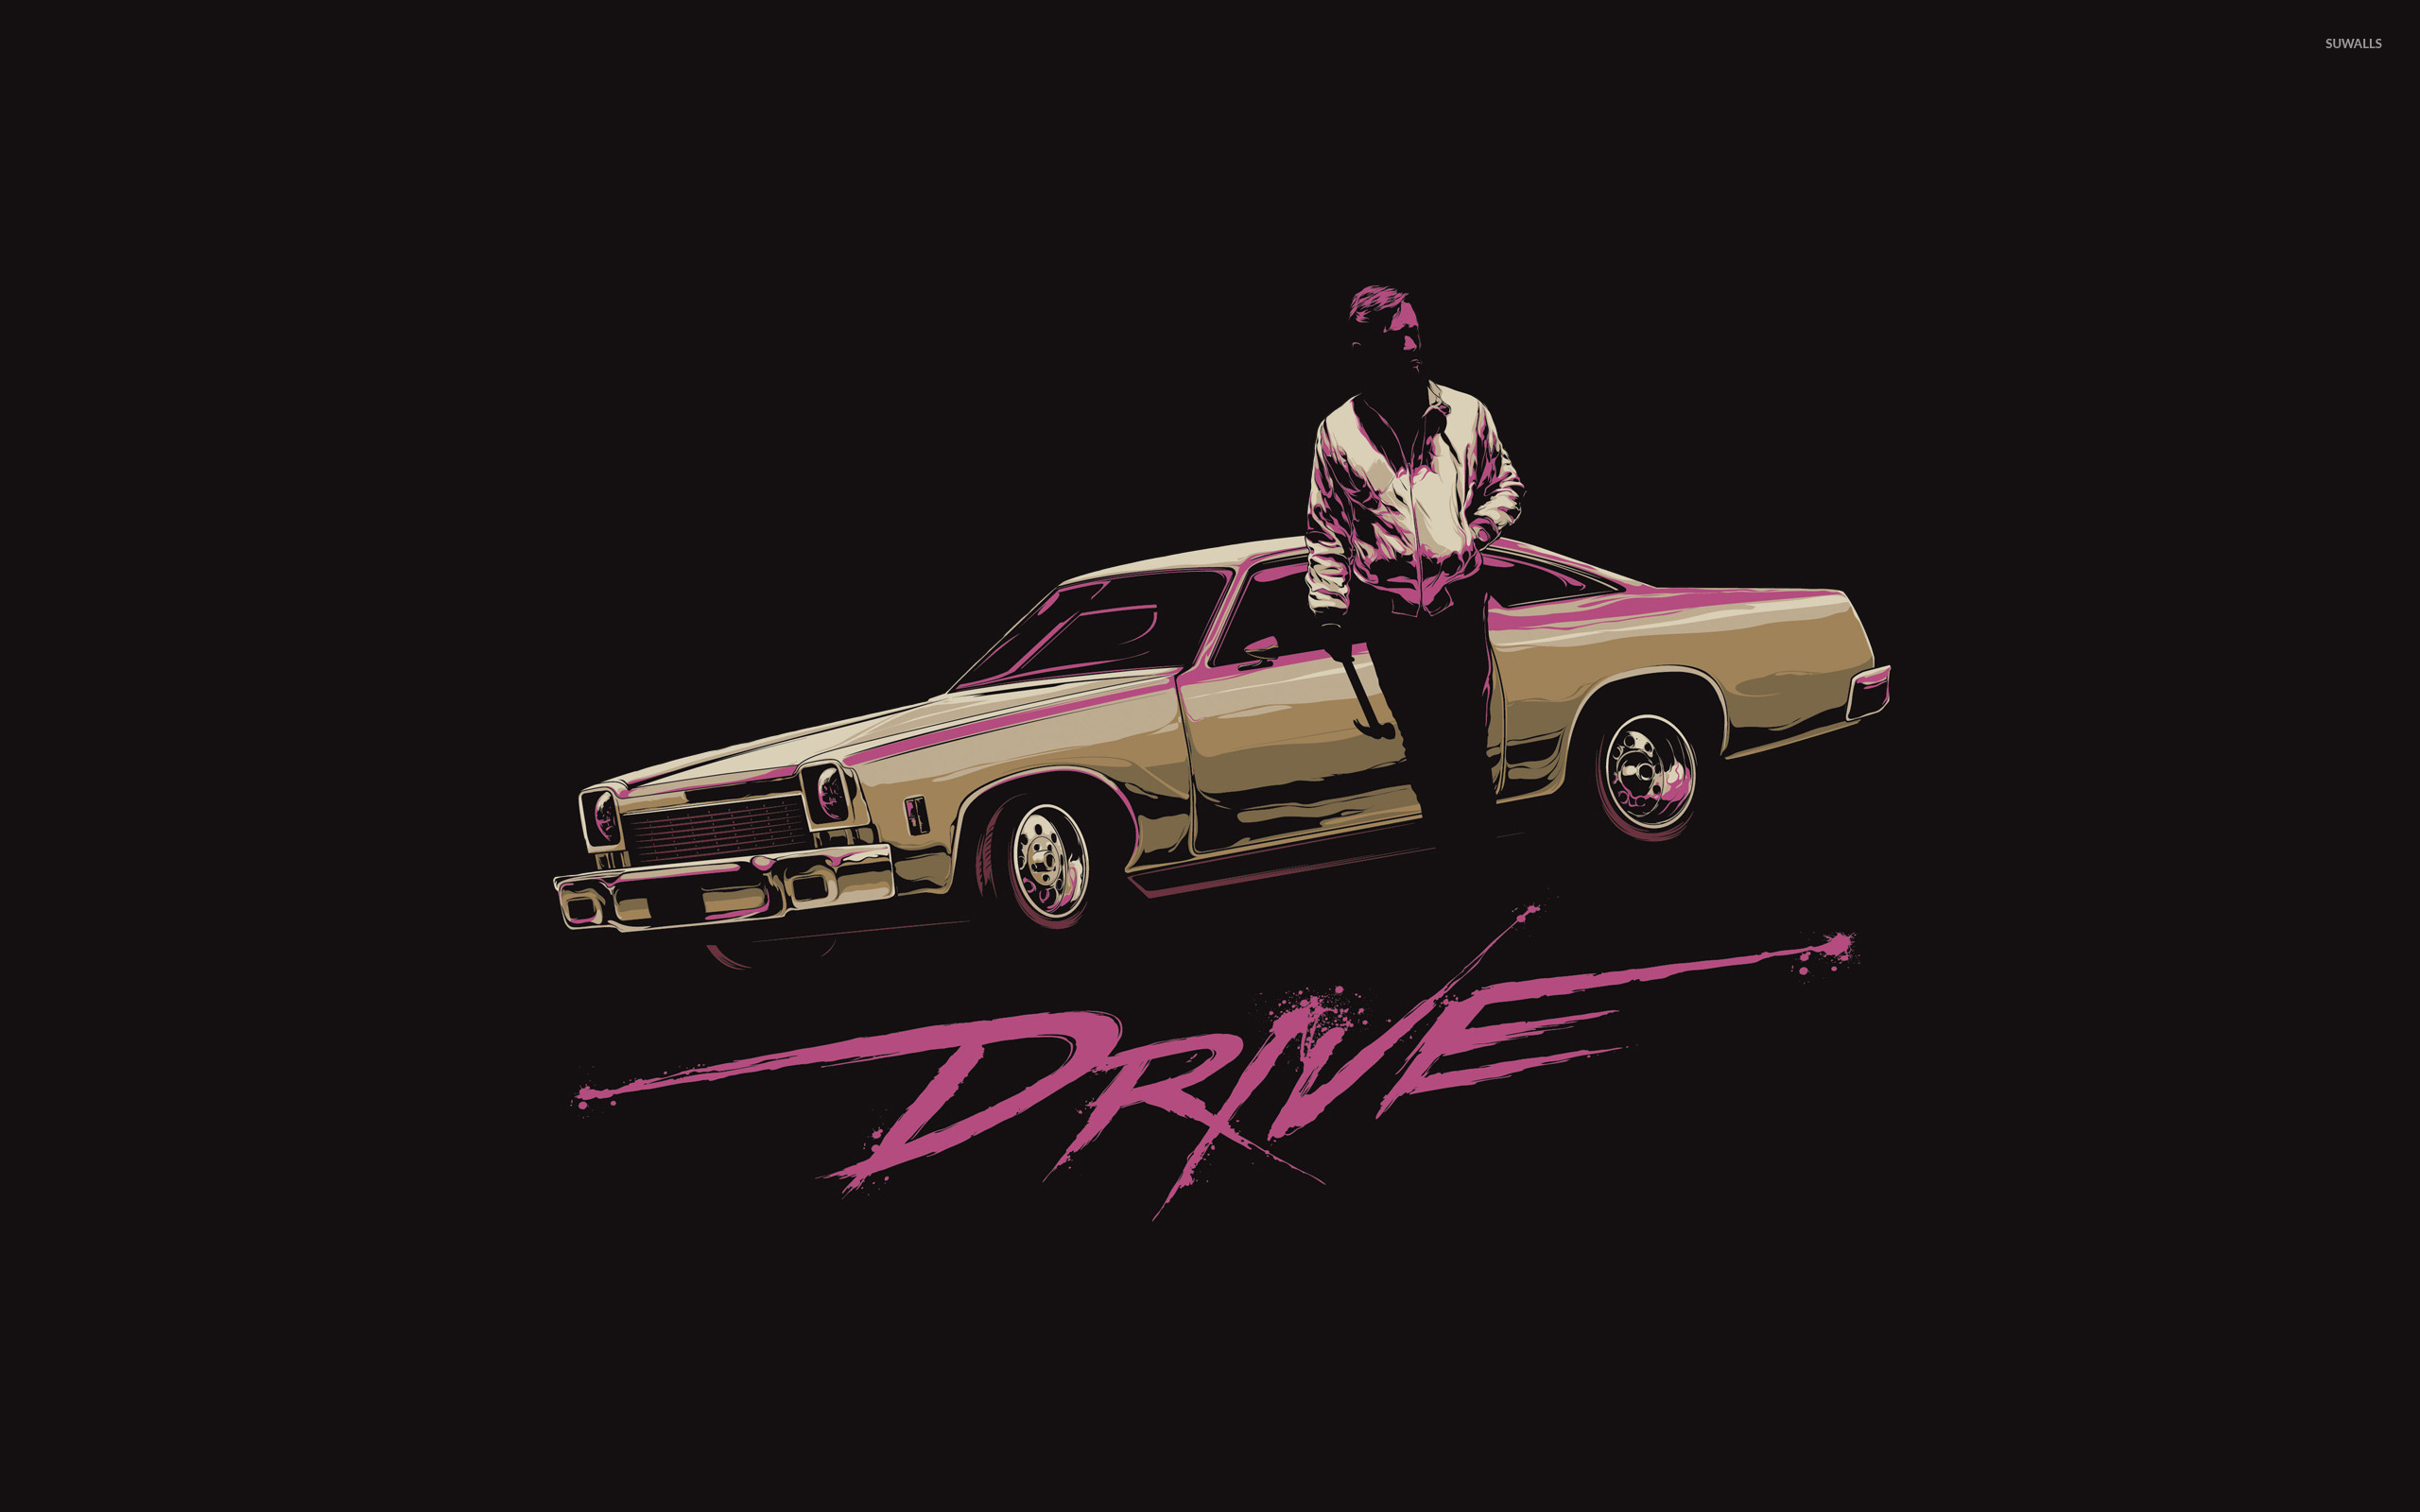 drive movie wallpaper images -#main